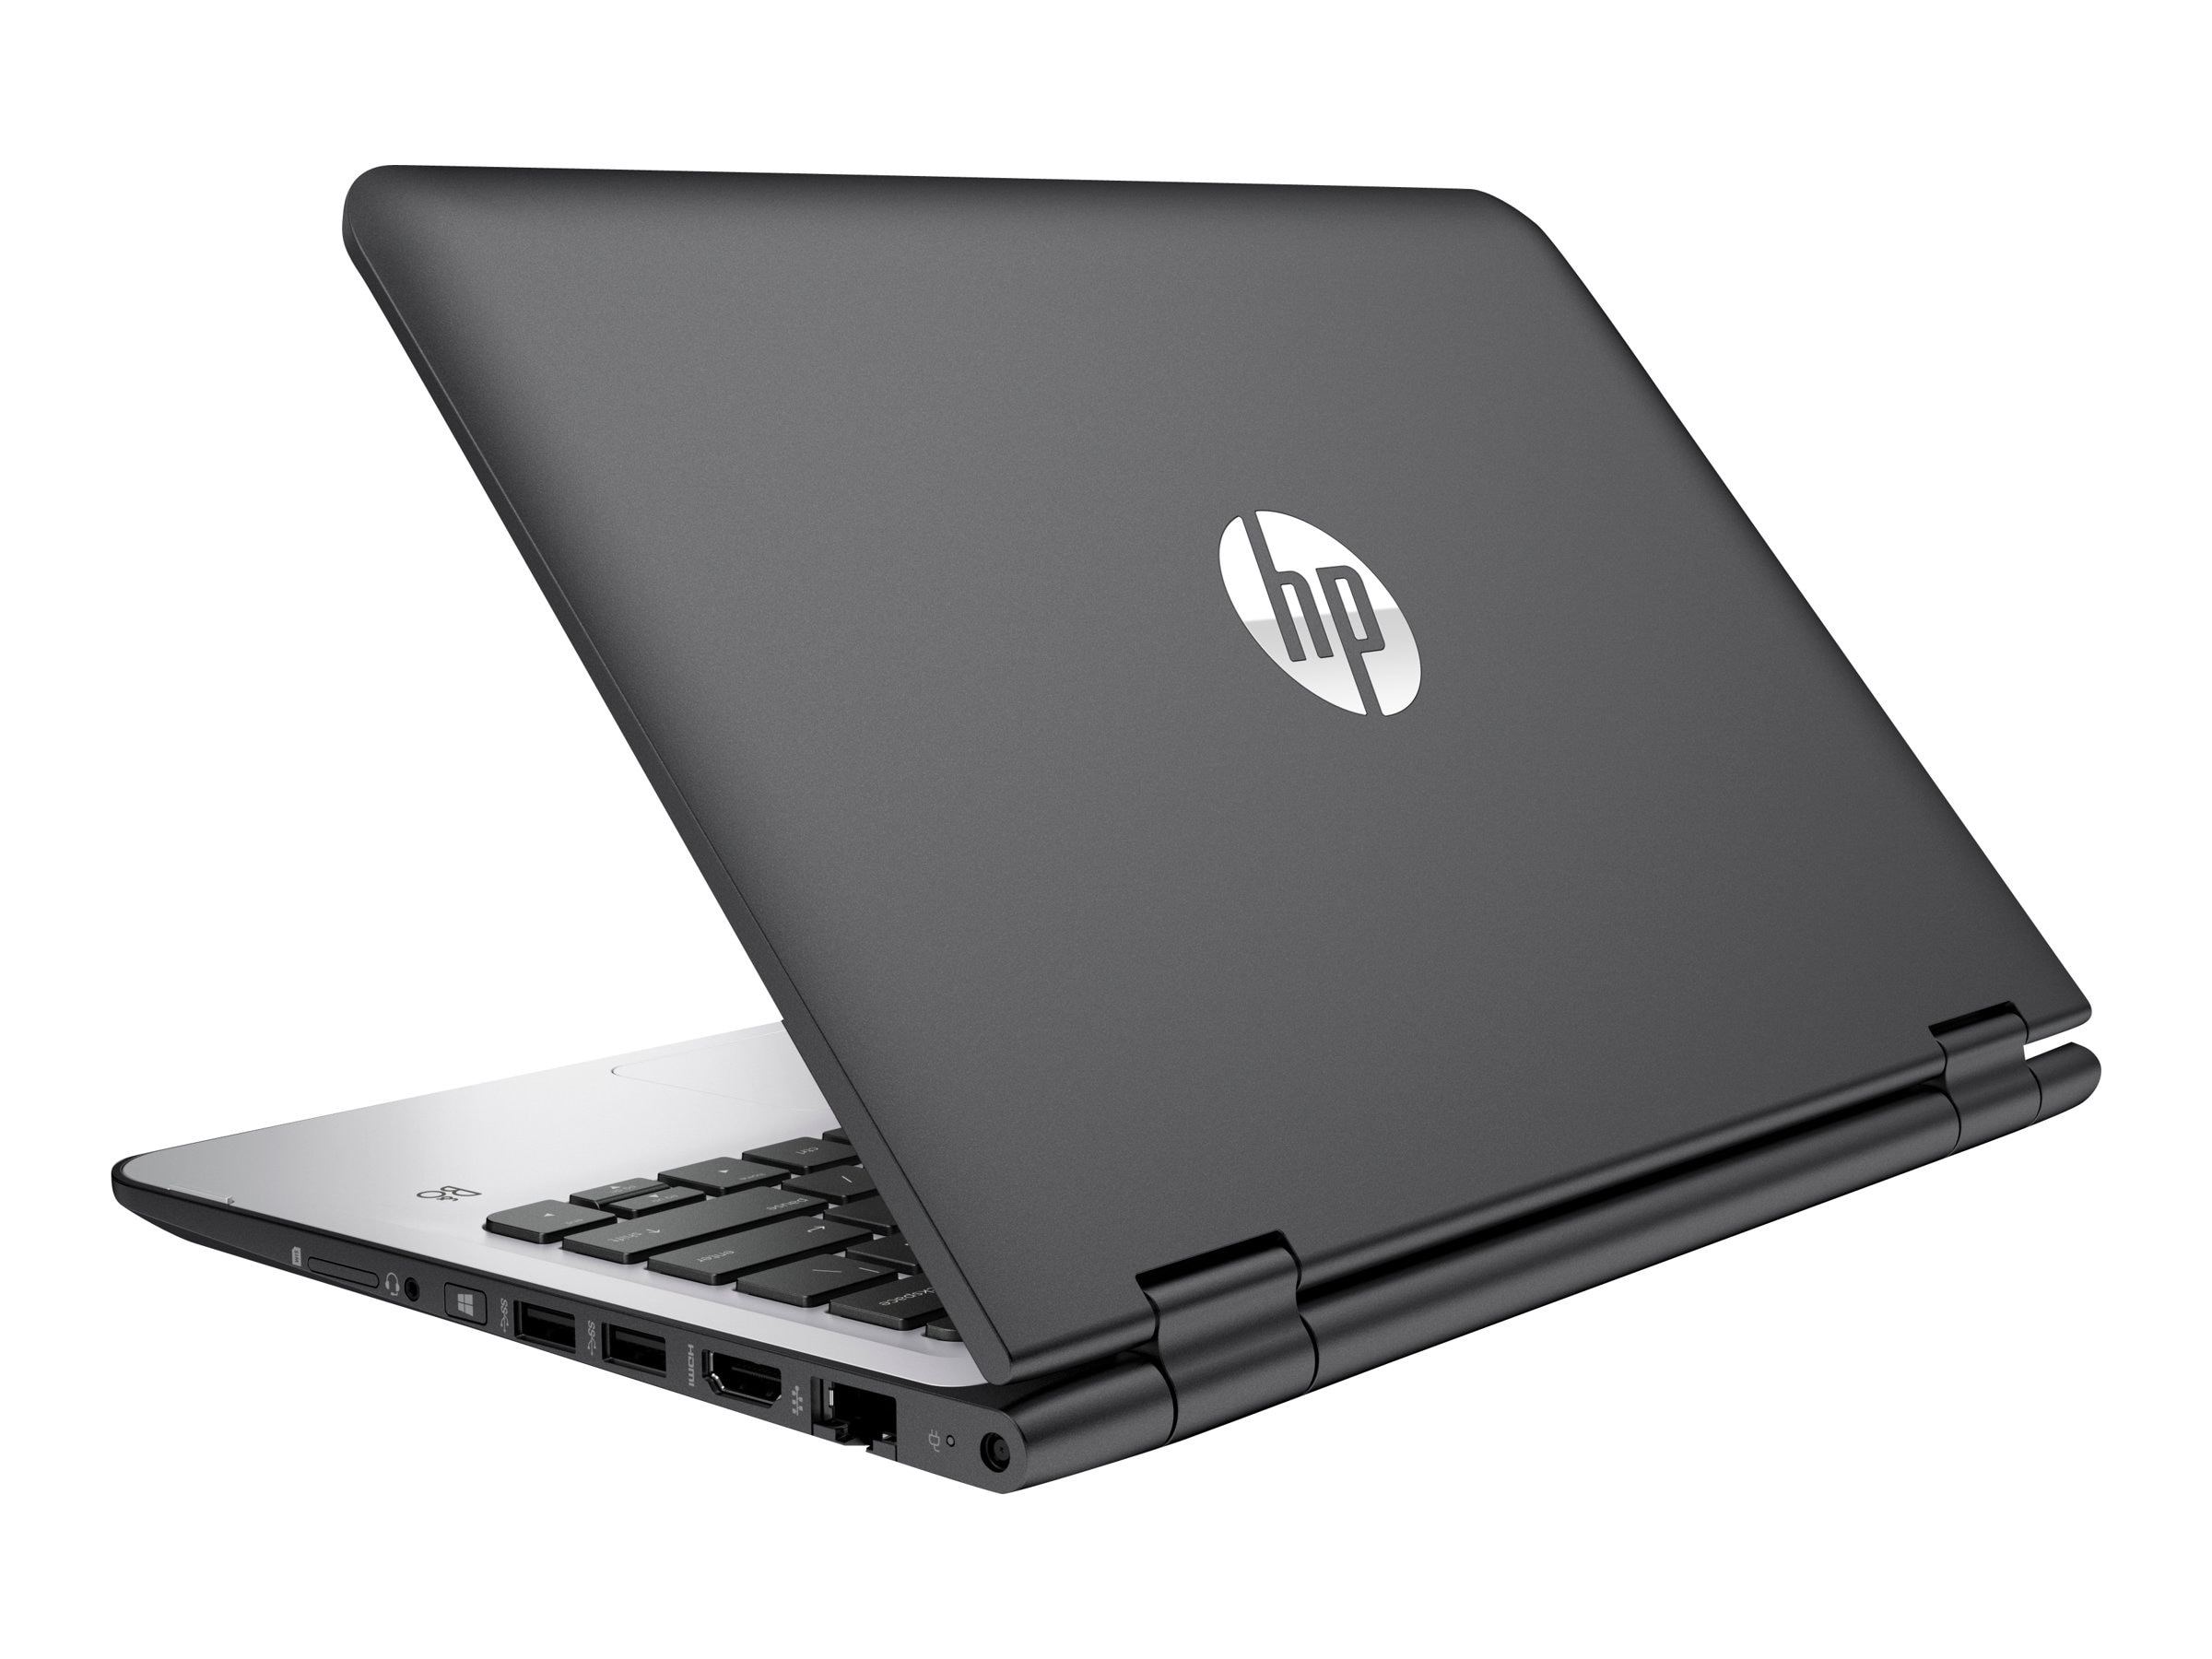 HP Shape the Future x360 310 G2 Celeron N3050 1.6GHz 4GB 128GB SSD ac abgn BT WC 3C 11.6 HD MT W10P64, V0C58UT#ABA